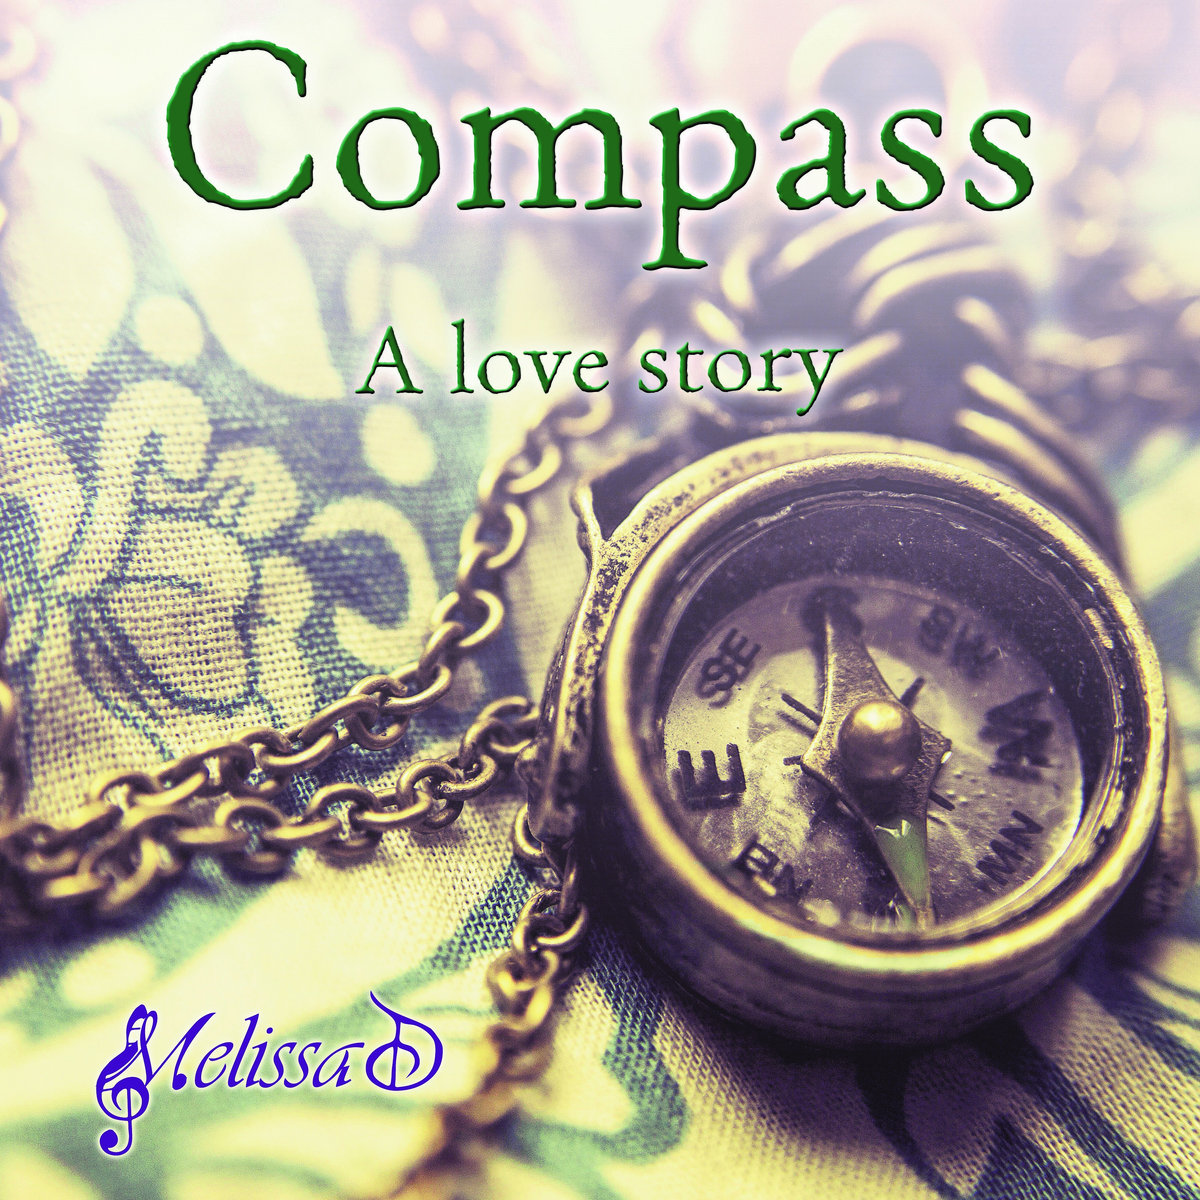 Compass by Melissa D